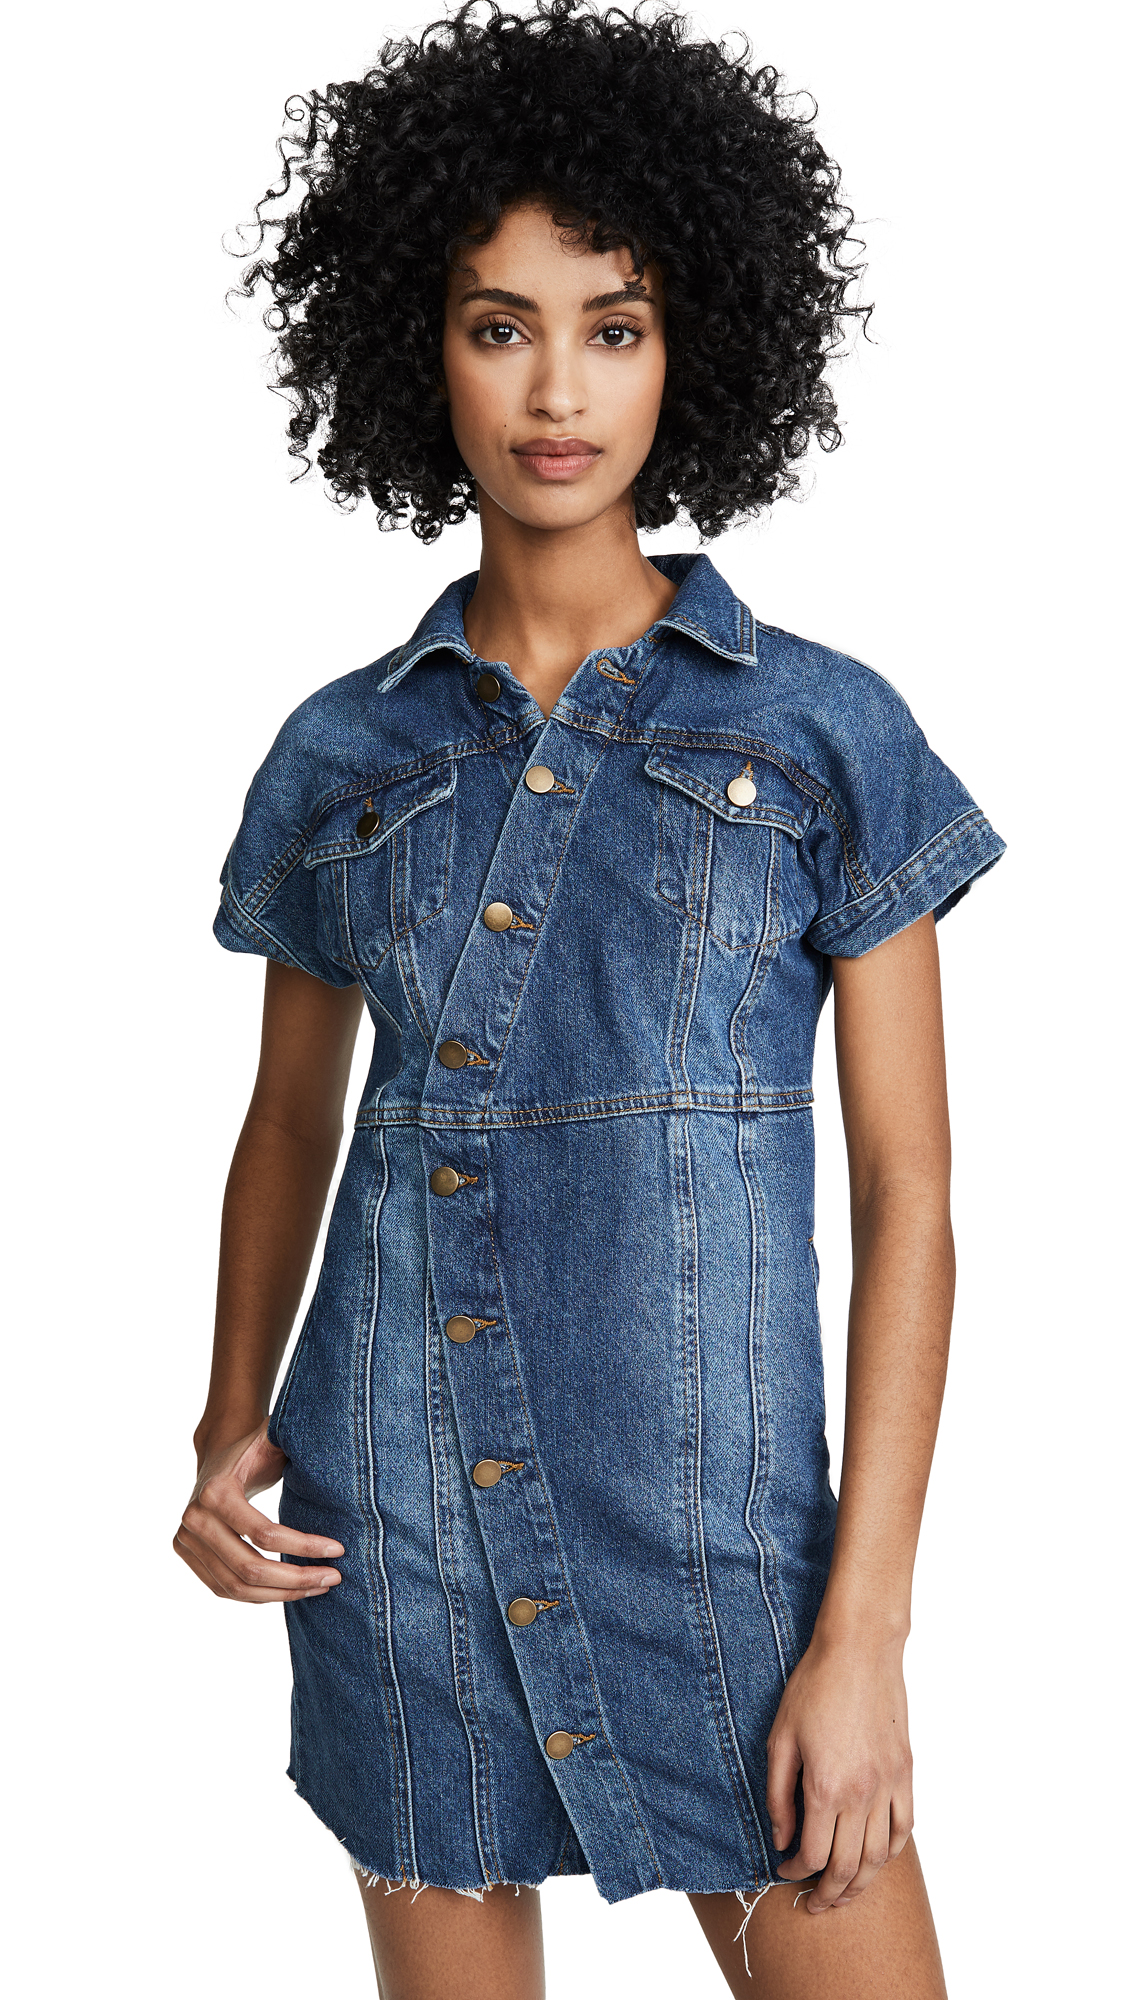 Free People The City Mini Dress - Blue